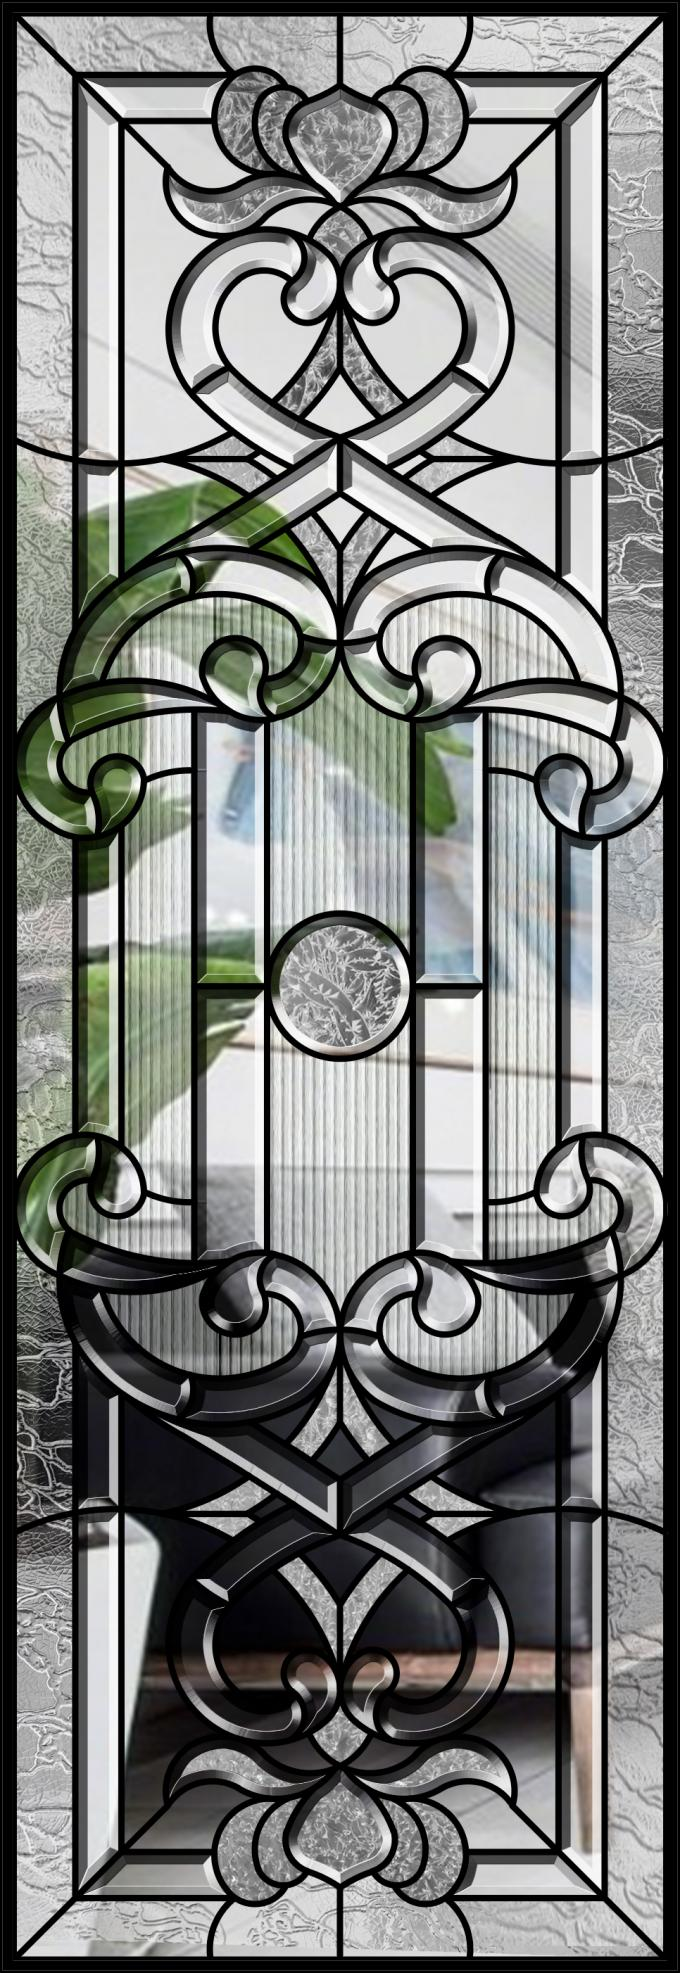 Safety Custom Size Decorative Panel Glass , Decorative Glass Windows Light Diffusion Art